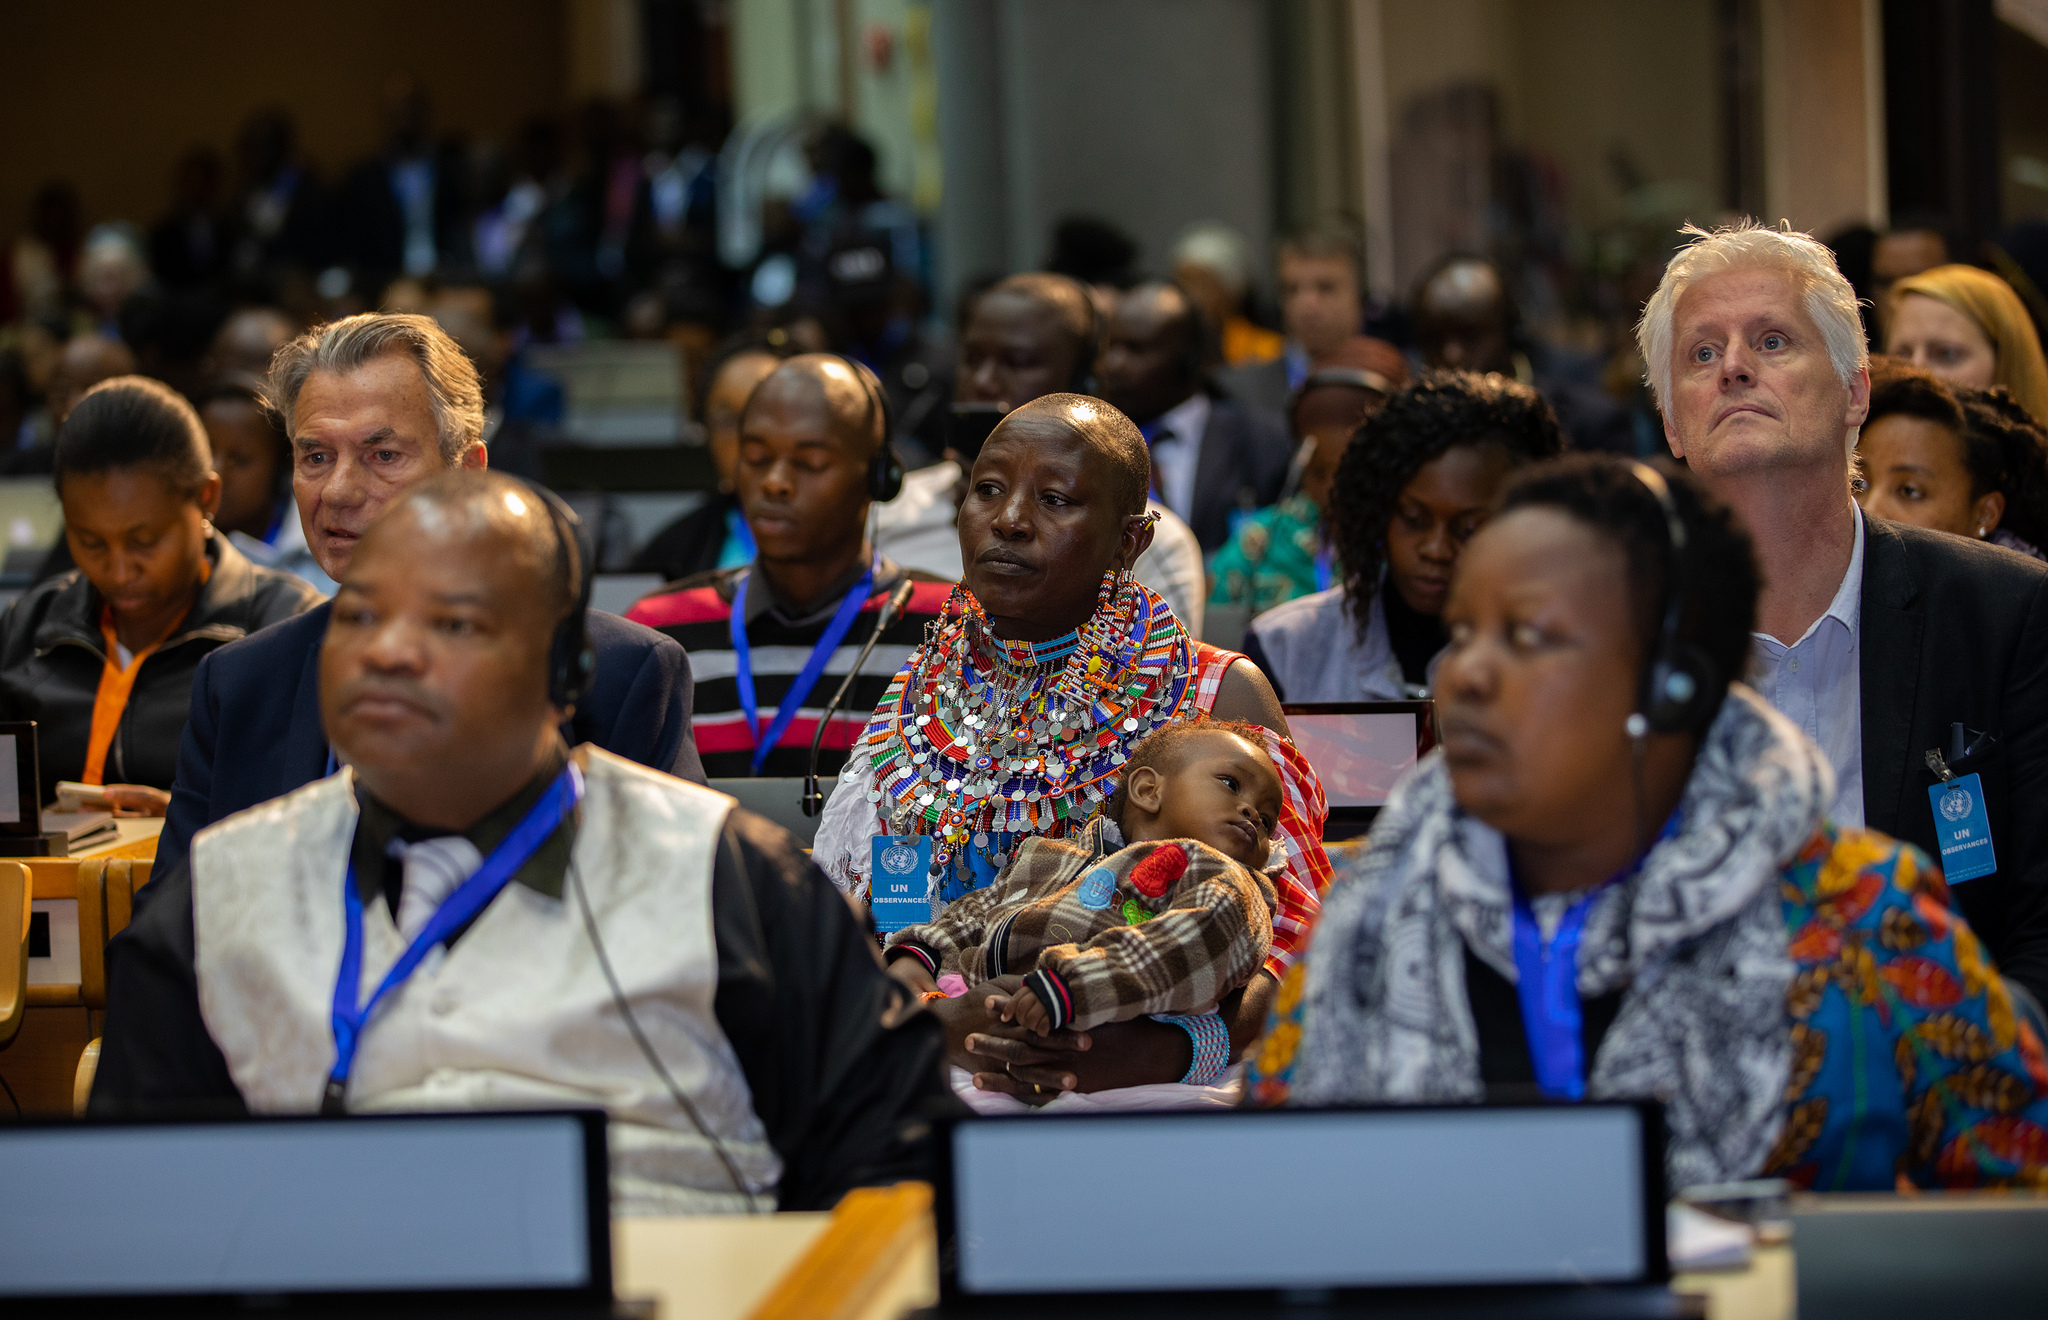 A Maasai woman holding a baby (center) attends the plenary session of the GLF Nairobi 2018. (Photo: Global Landscapes Forum)